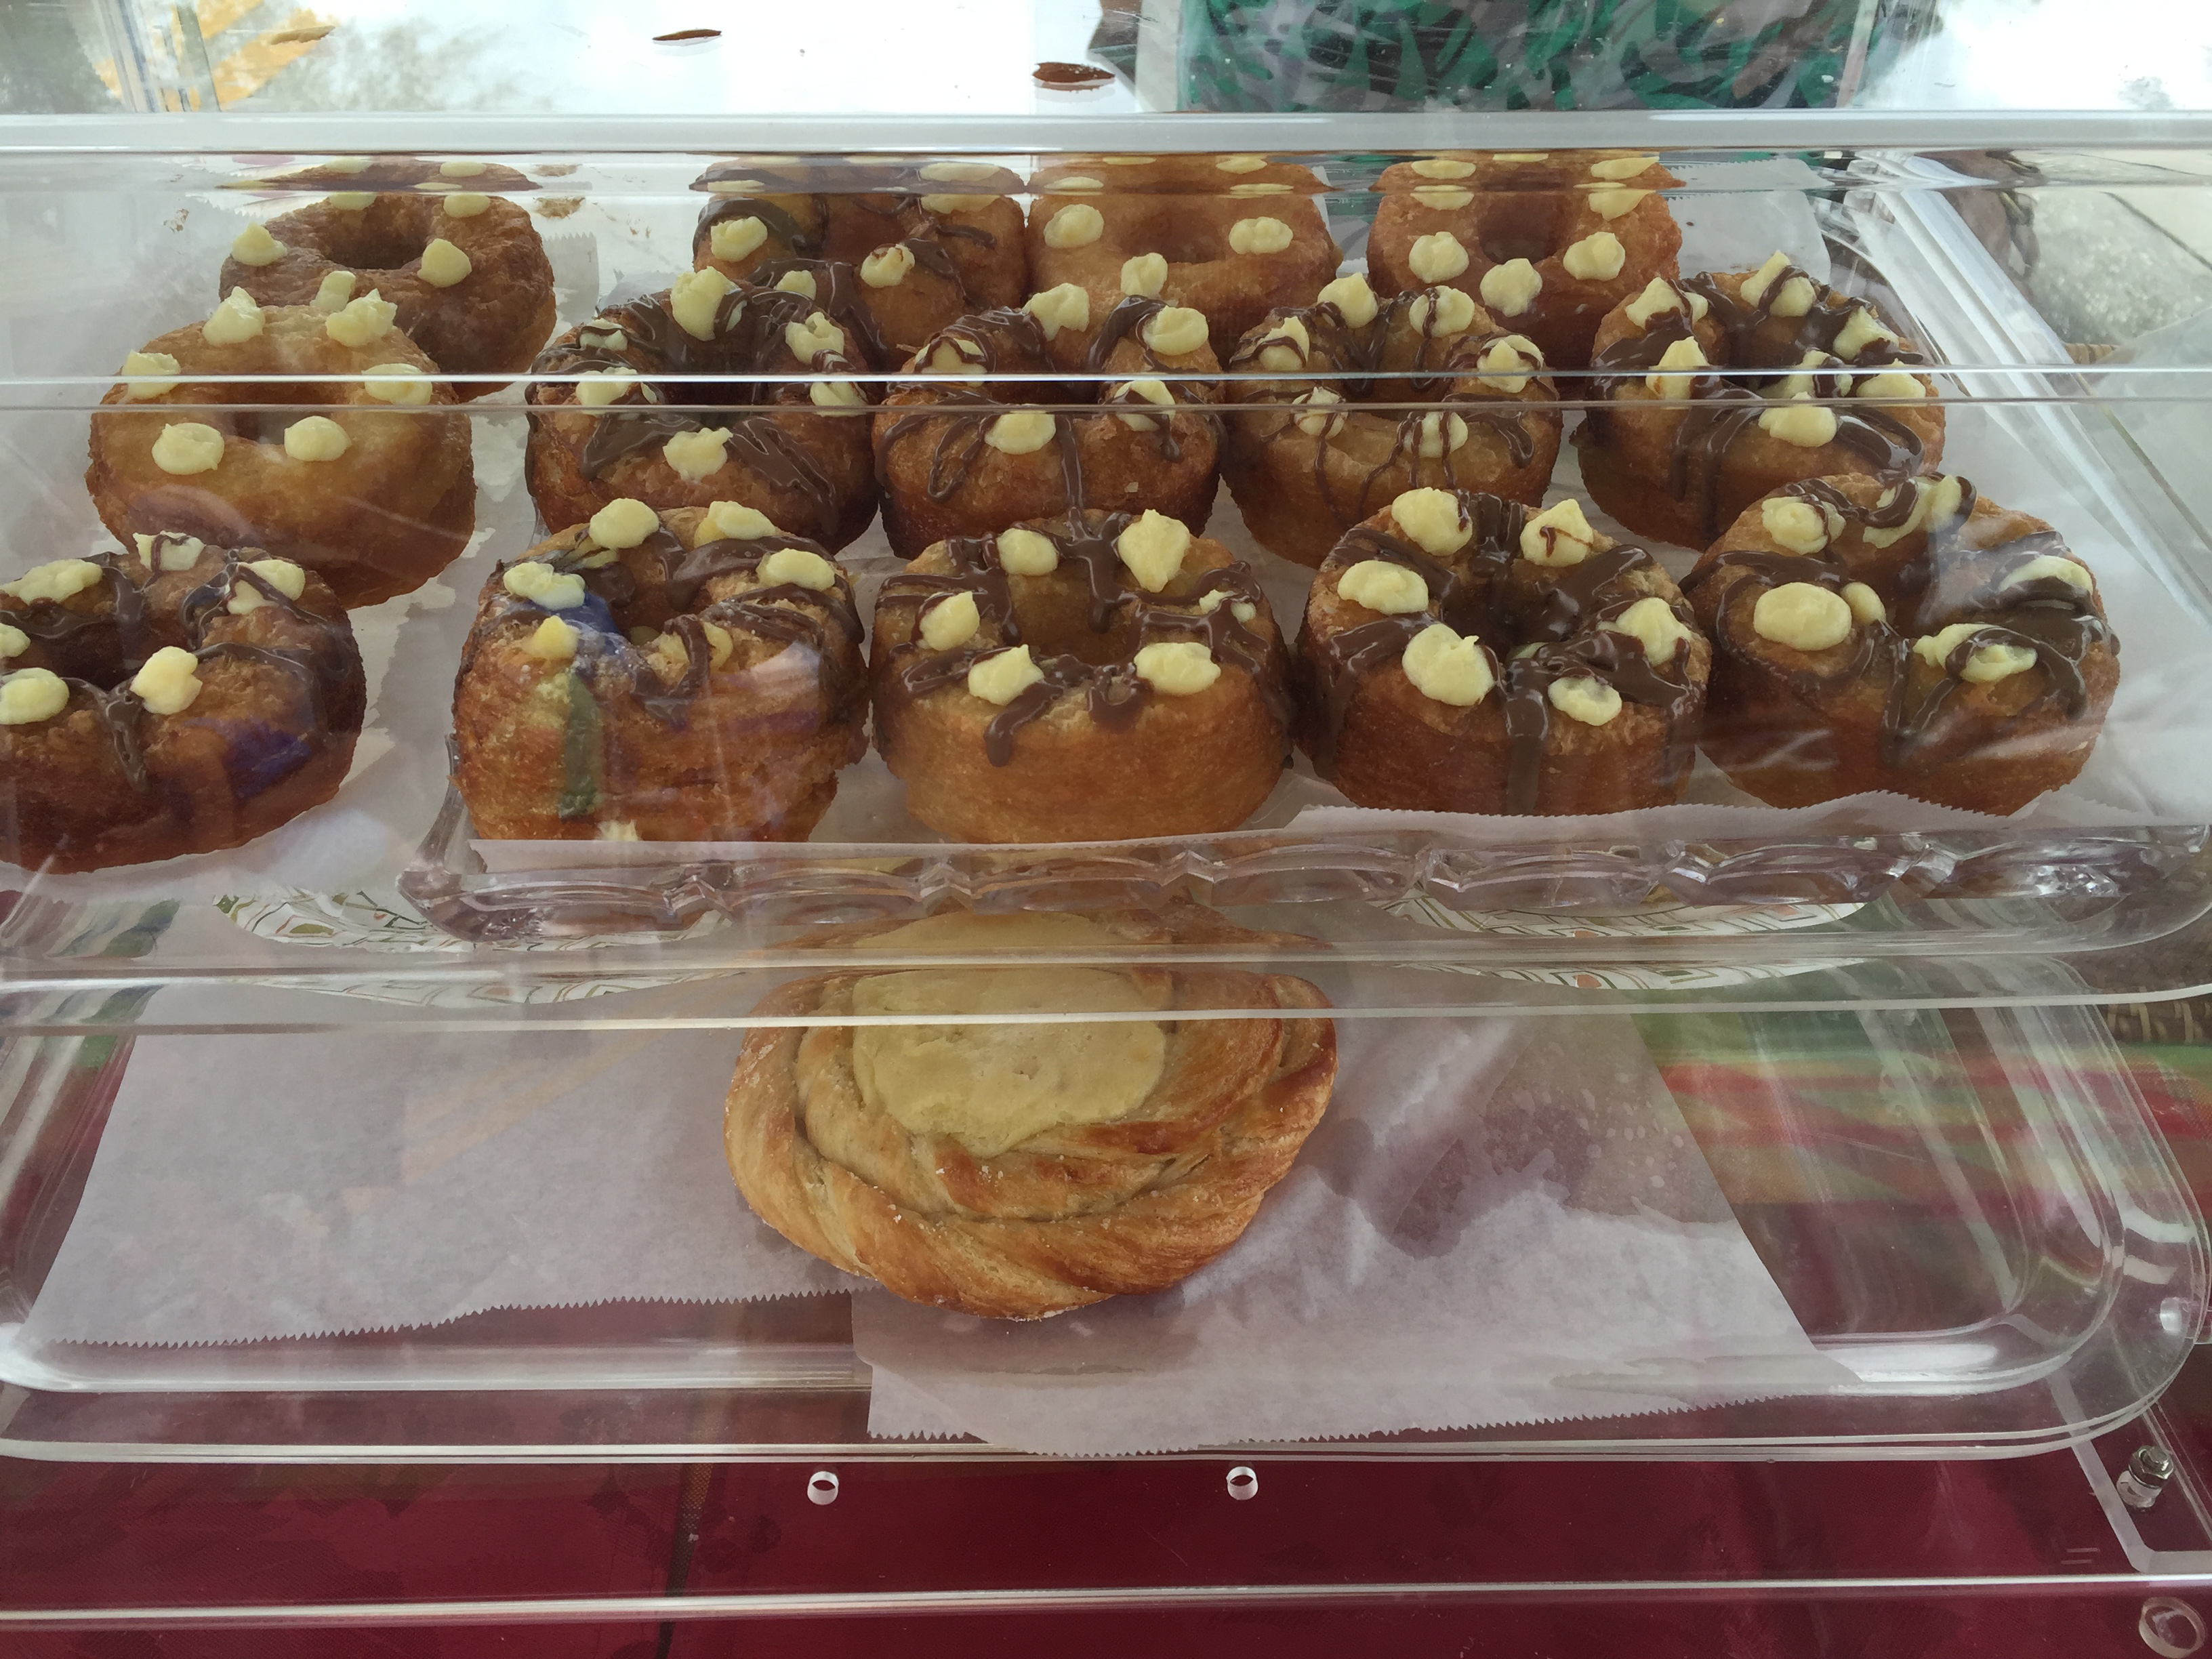 Pastries - Oh 4 Goodness Cakes - specialty cakes - pastries - rolls - pies - cookies - bread